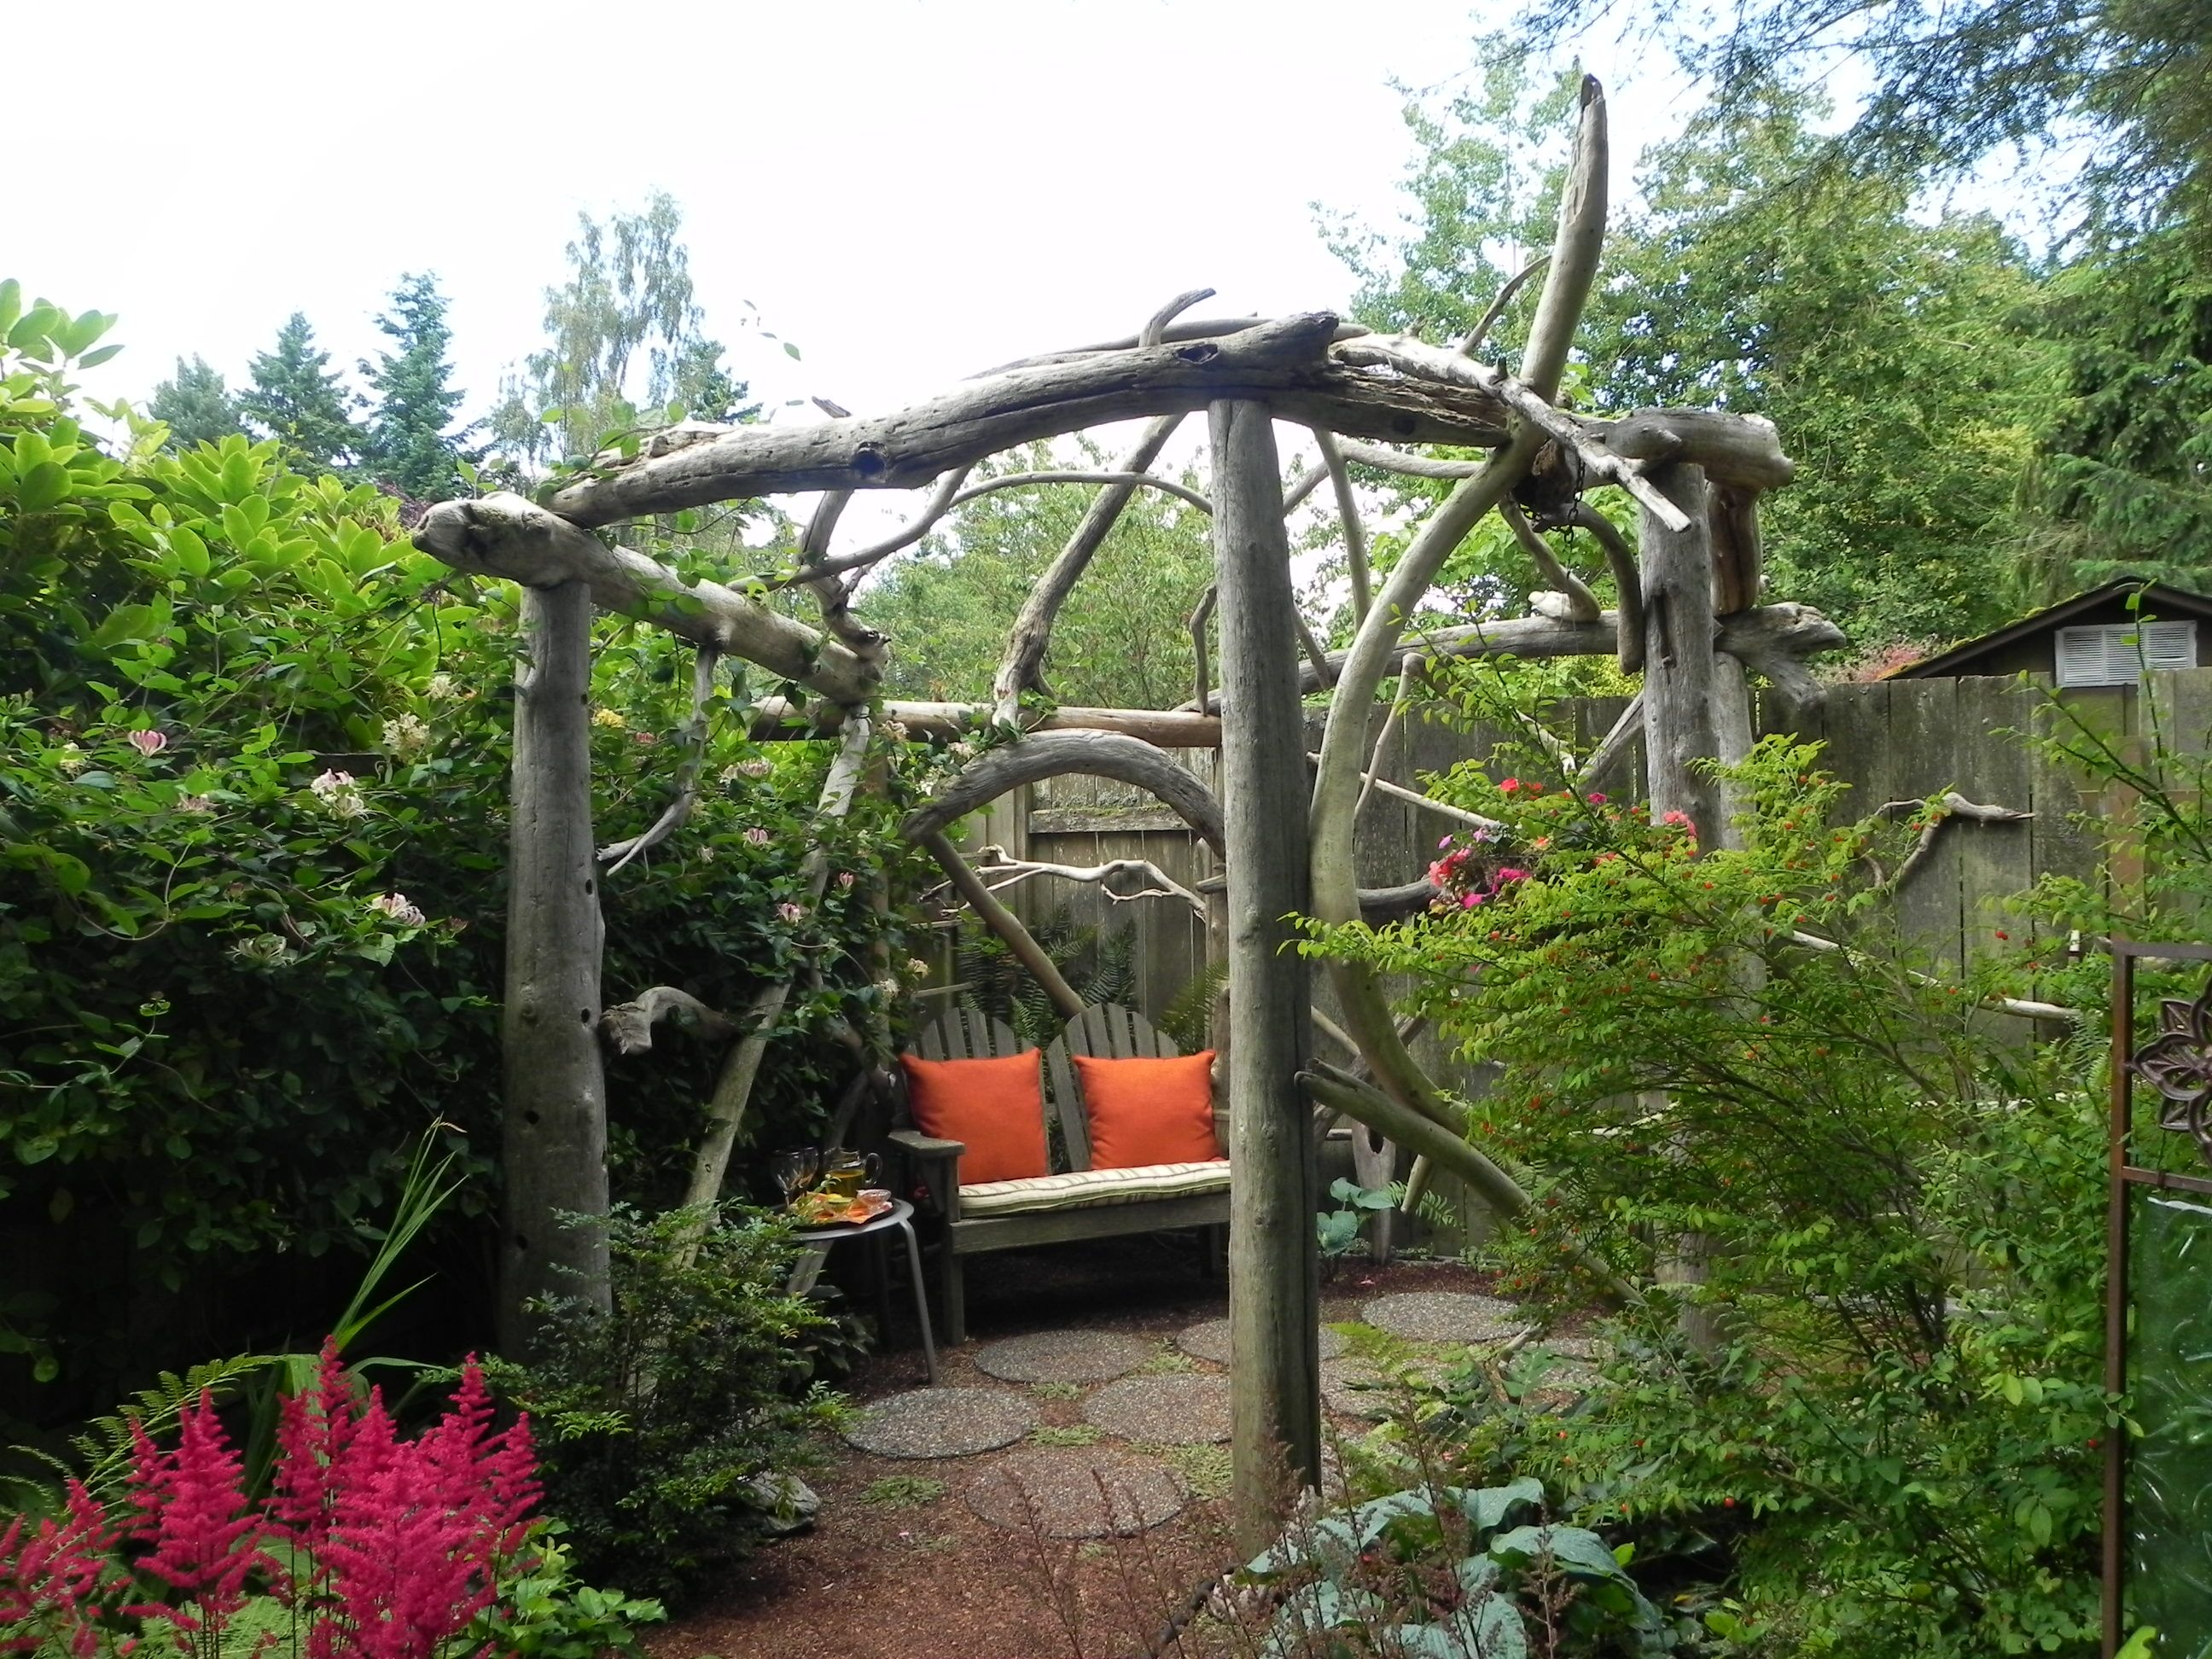 rustic garden ideas This rustic pergola represents the